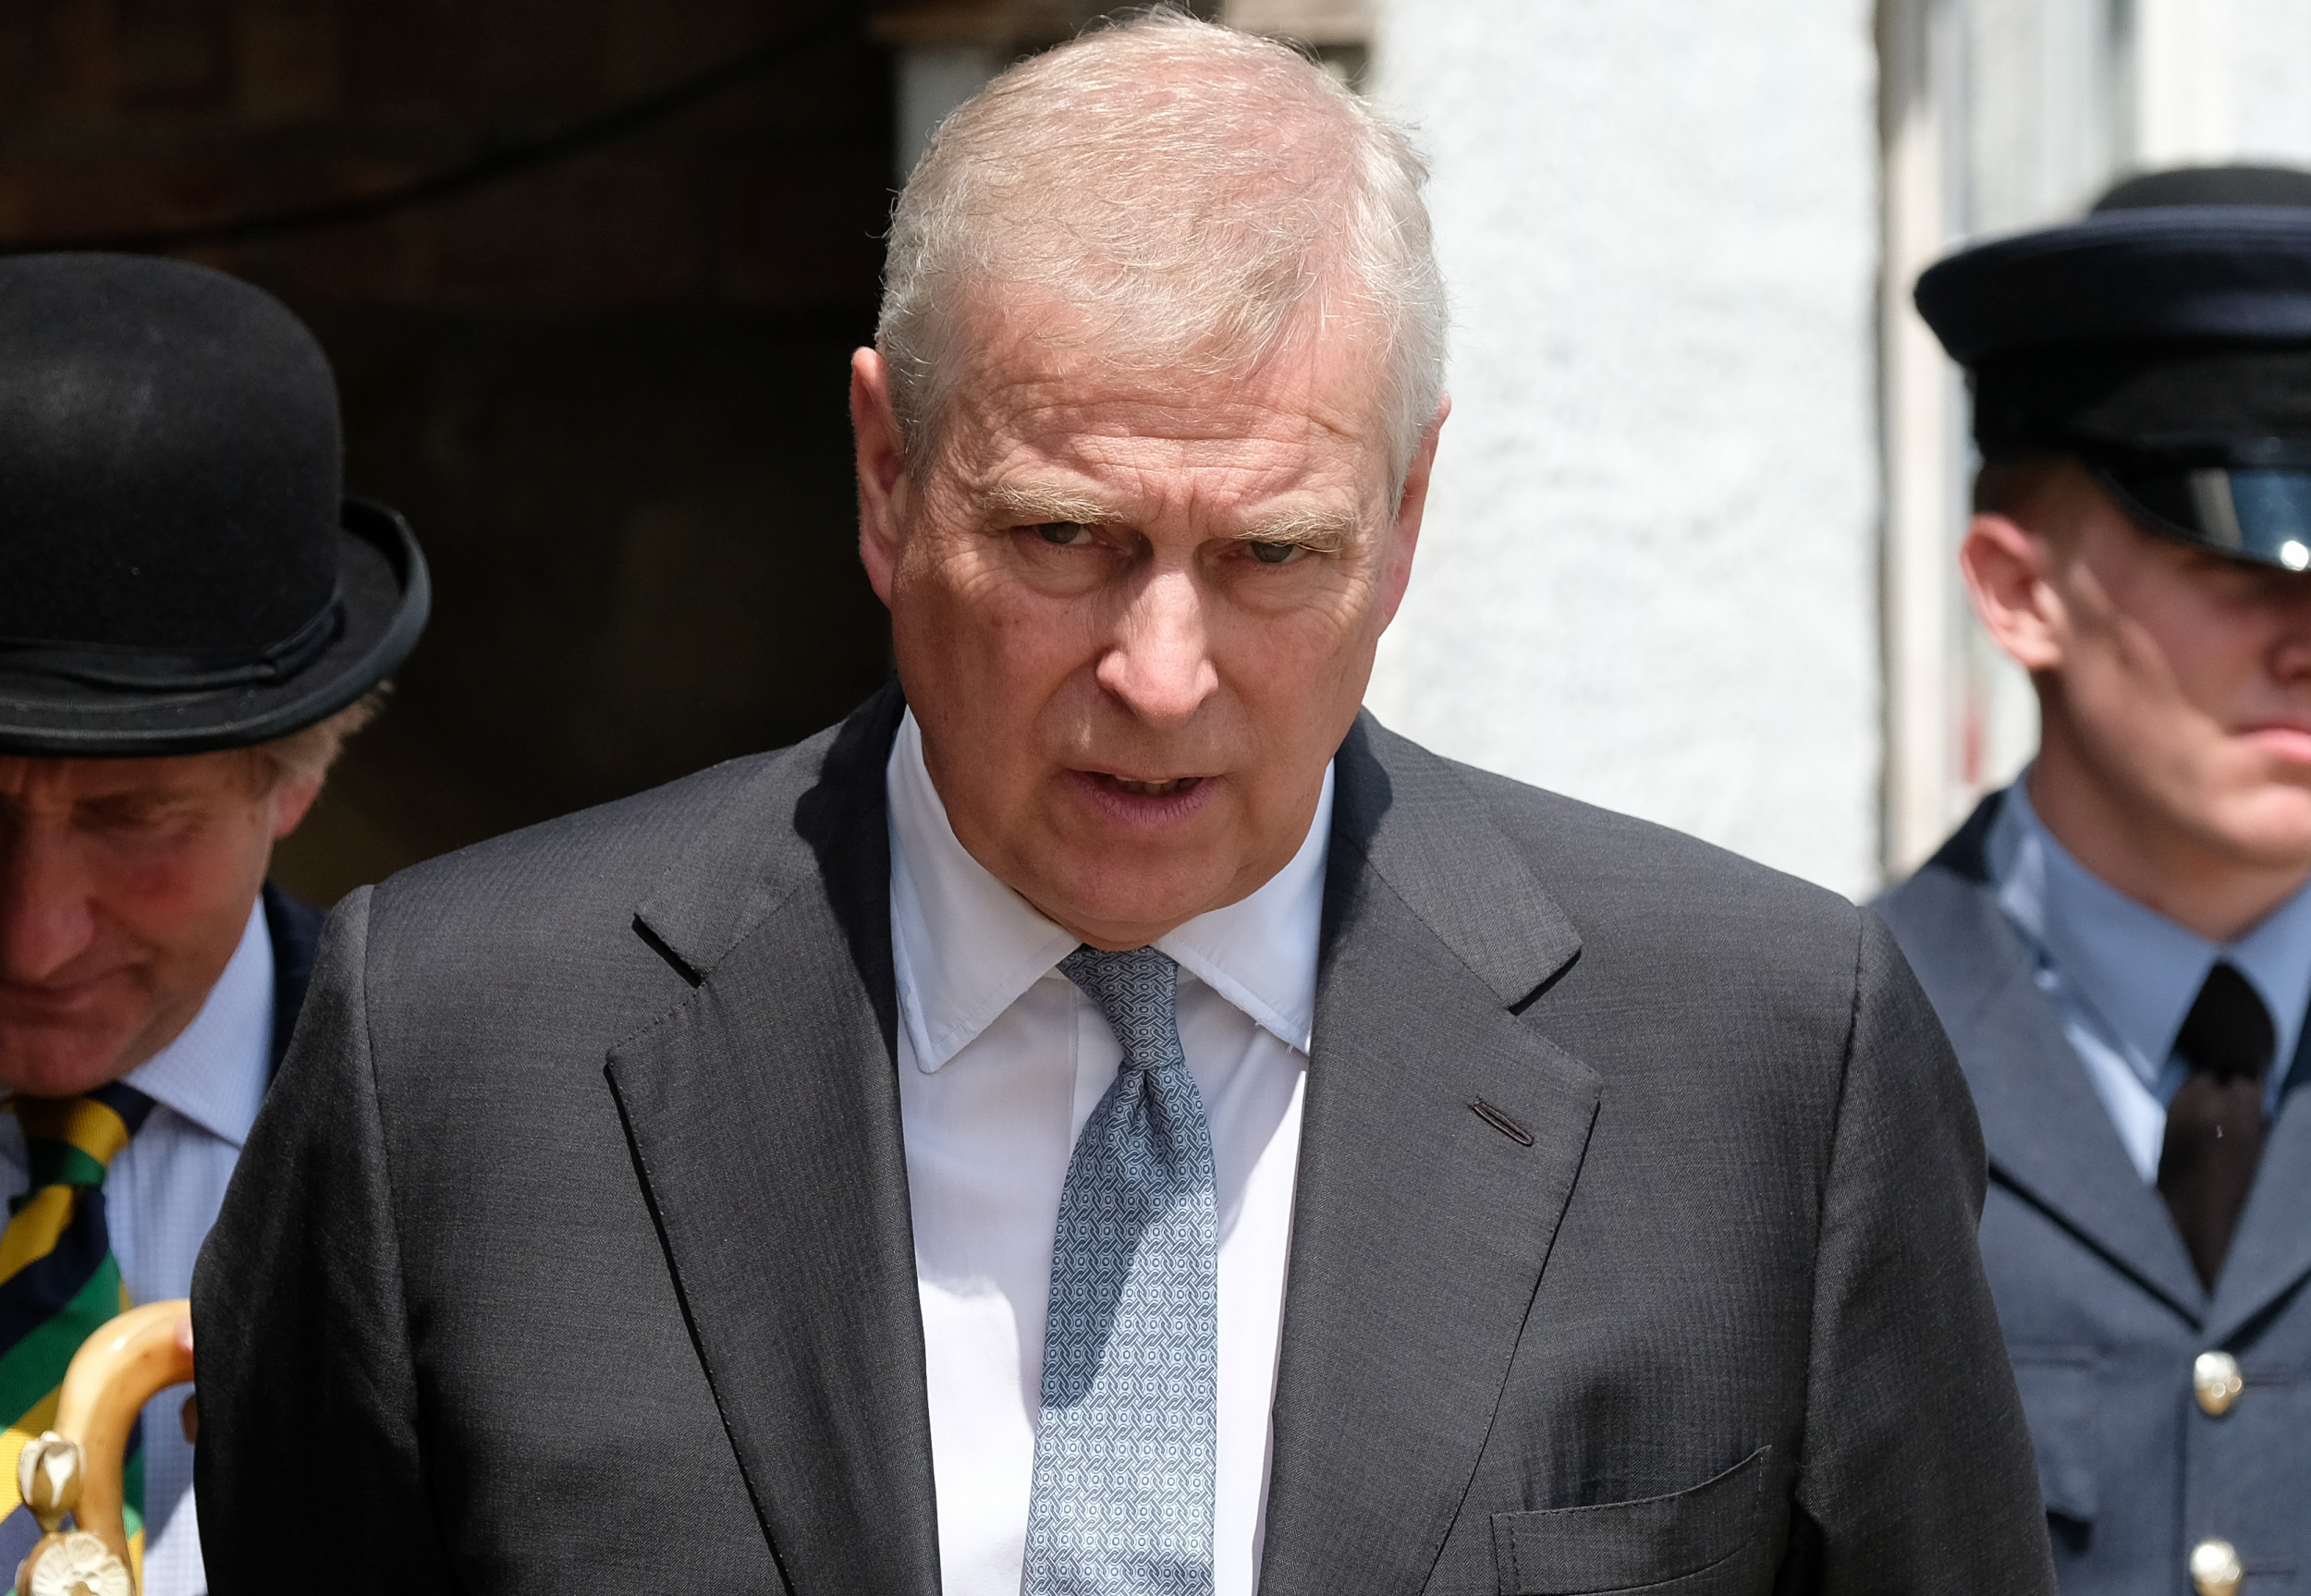 Prince Andrew And Jeffrey Epstein Ties Remain Uninvestigated By